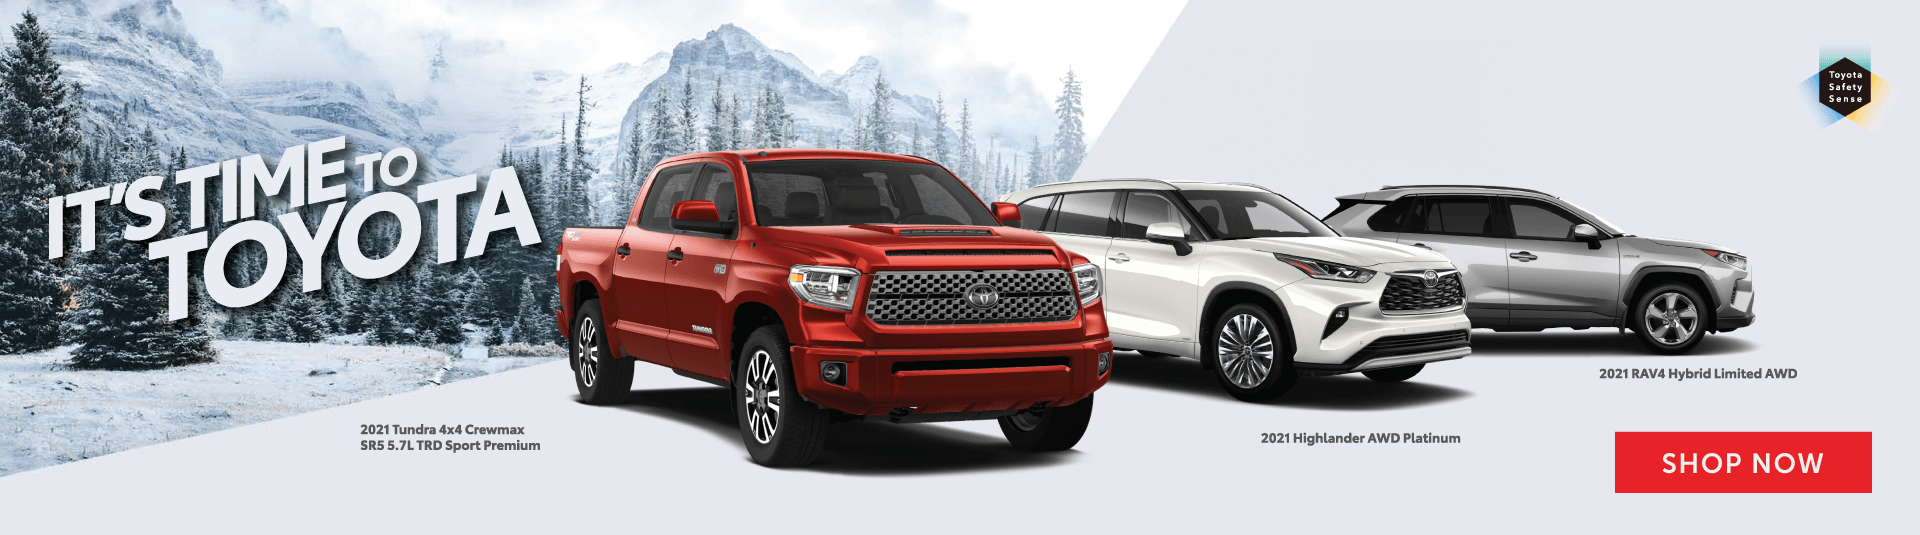 It's Time To Toyota - 2021 Model lineup at Goderich Toyota